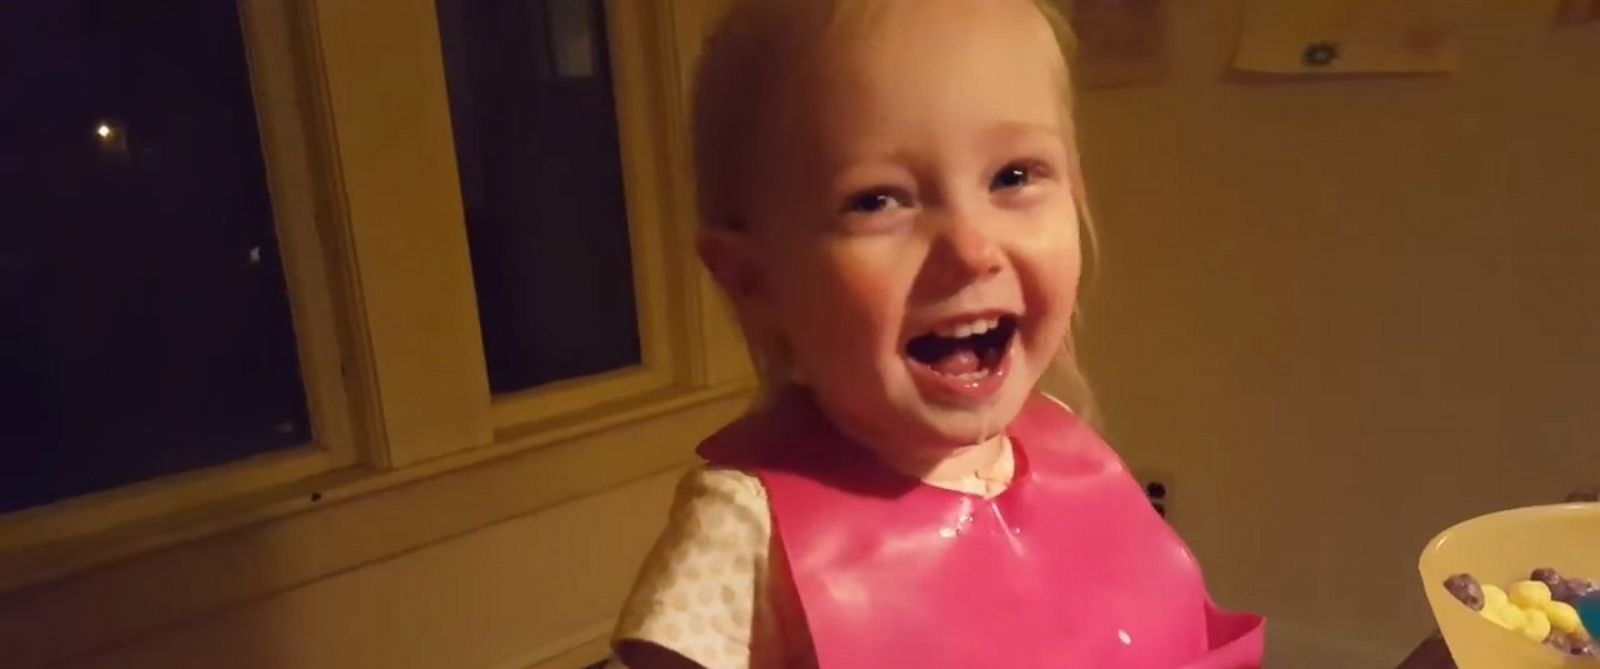 PHOTO: A cute toddler cant stop laughing while her dad tries to explain what snow is to her.